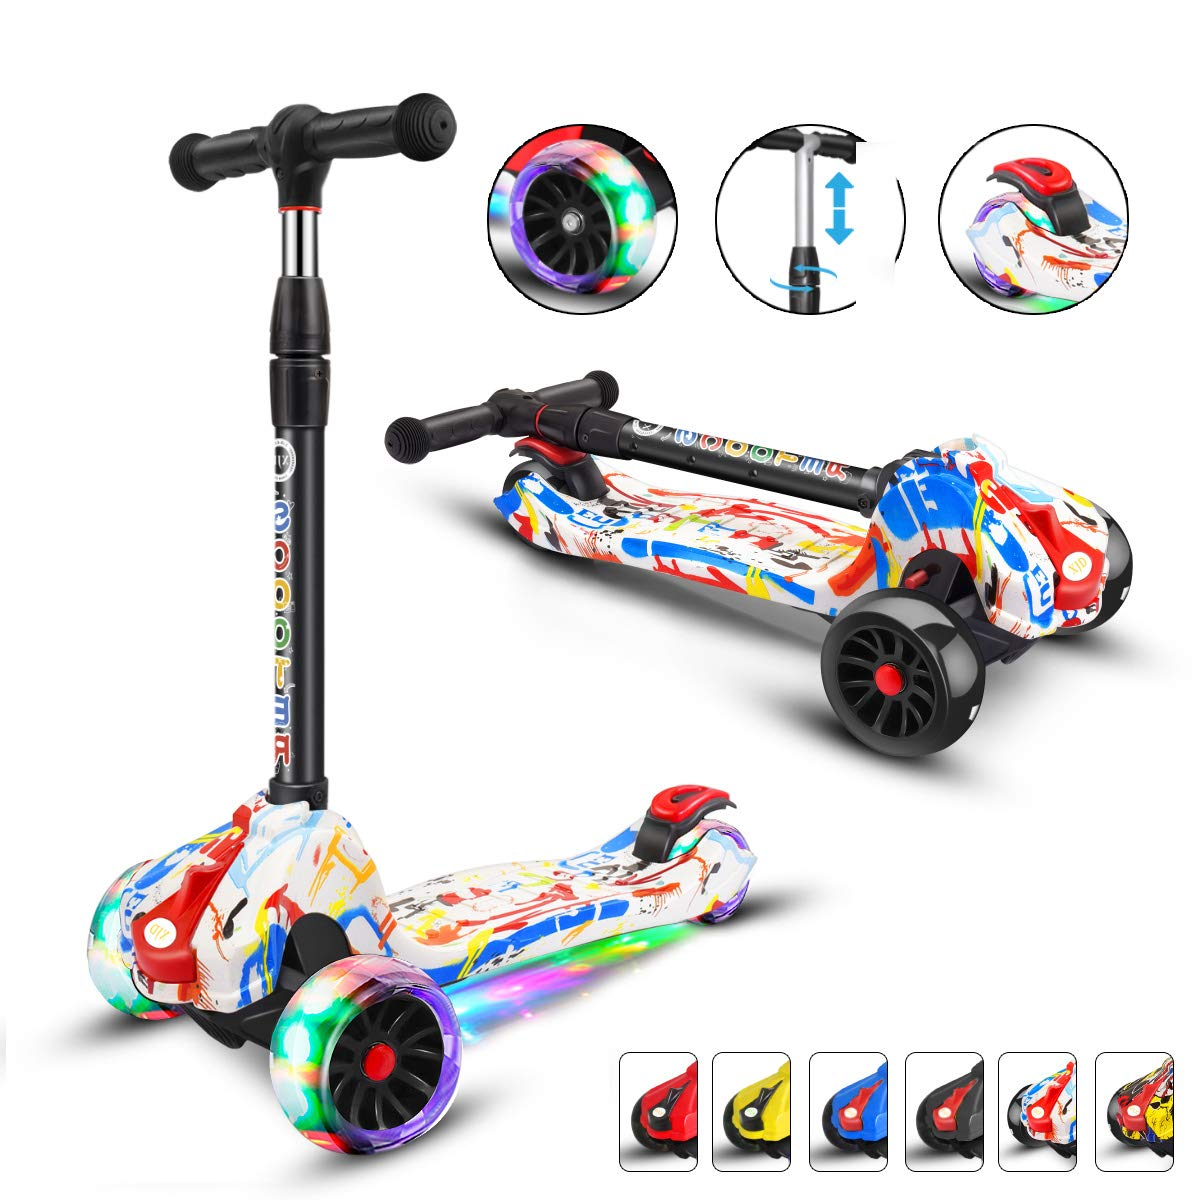 XJD Scooters for Kids Scooter 3 Wheel for Boys Girls 4 Adjustable Height Extra-Wide Deck 100% Assembled PU Flashing Wheels Toddlers Scooter for Children from 3 to 14 Years Old Graffiti by XJD